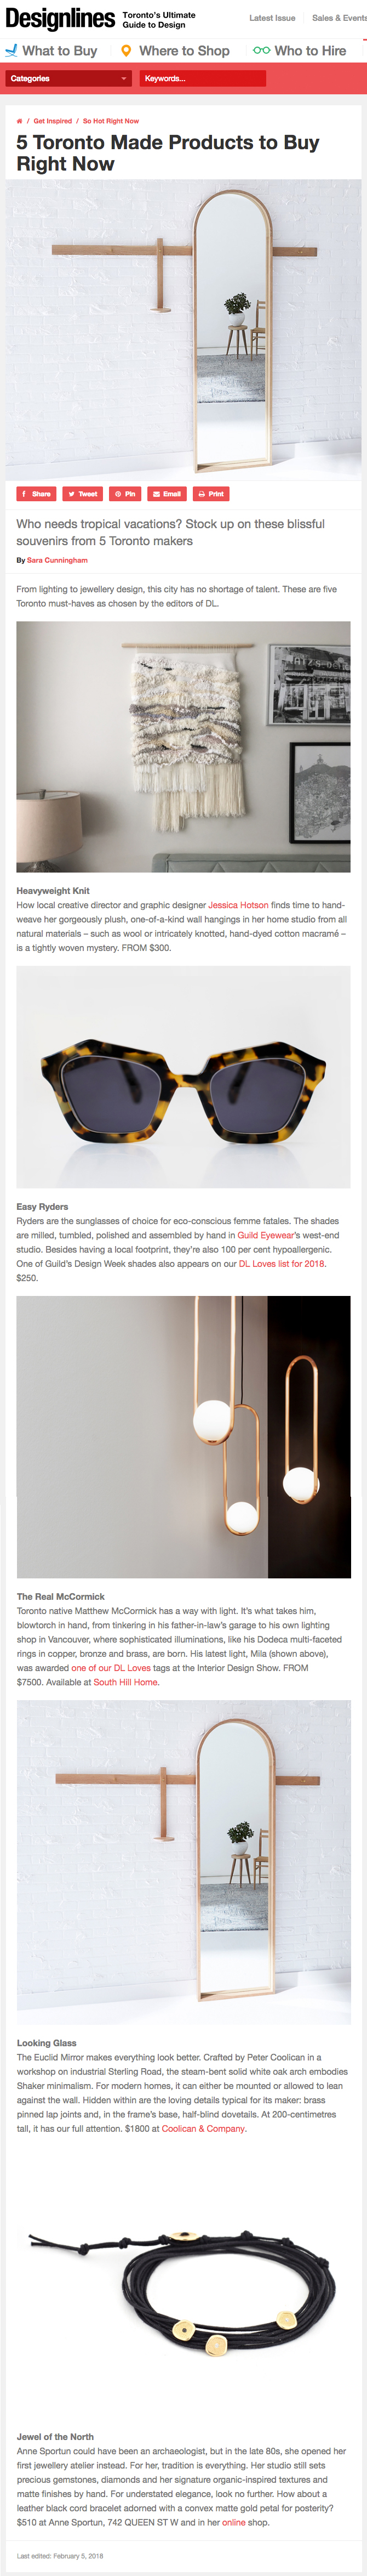 Anne Sportun featured on  Designlines Magazine .